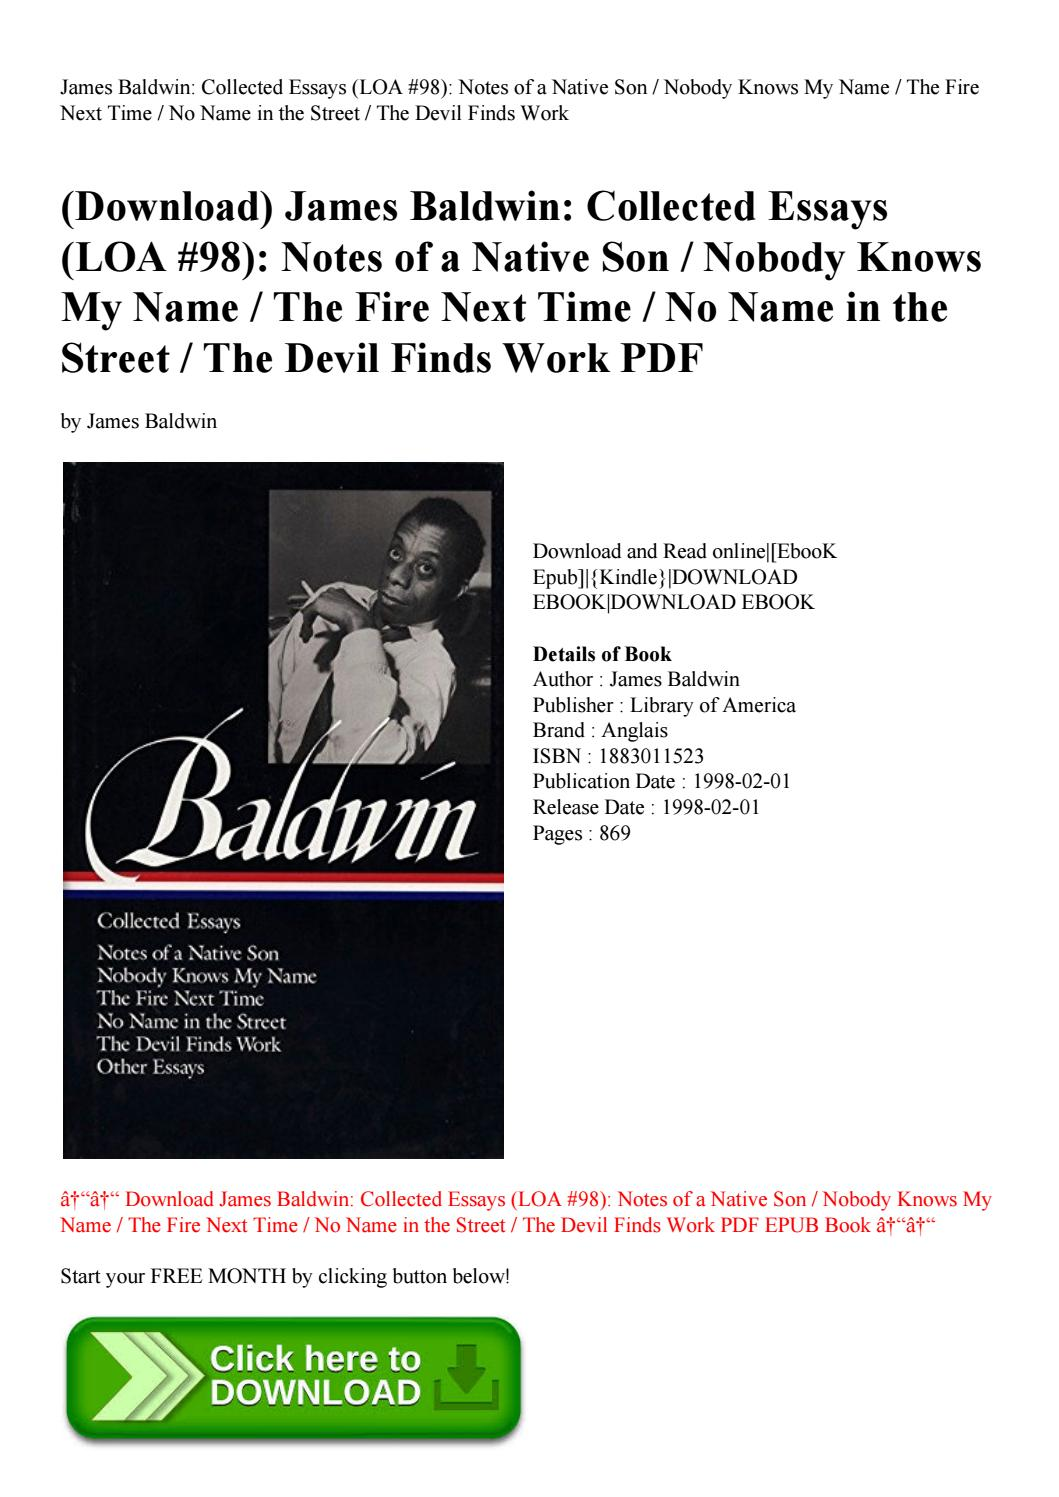 010 Page 1 Essay Example James Baldwin Collected Wondrous Essays Table Of Contents Ebook Google Books Full